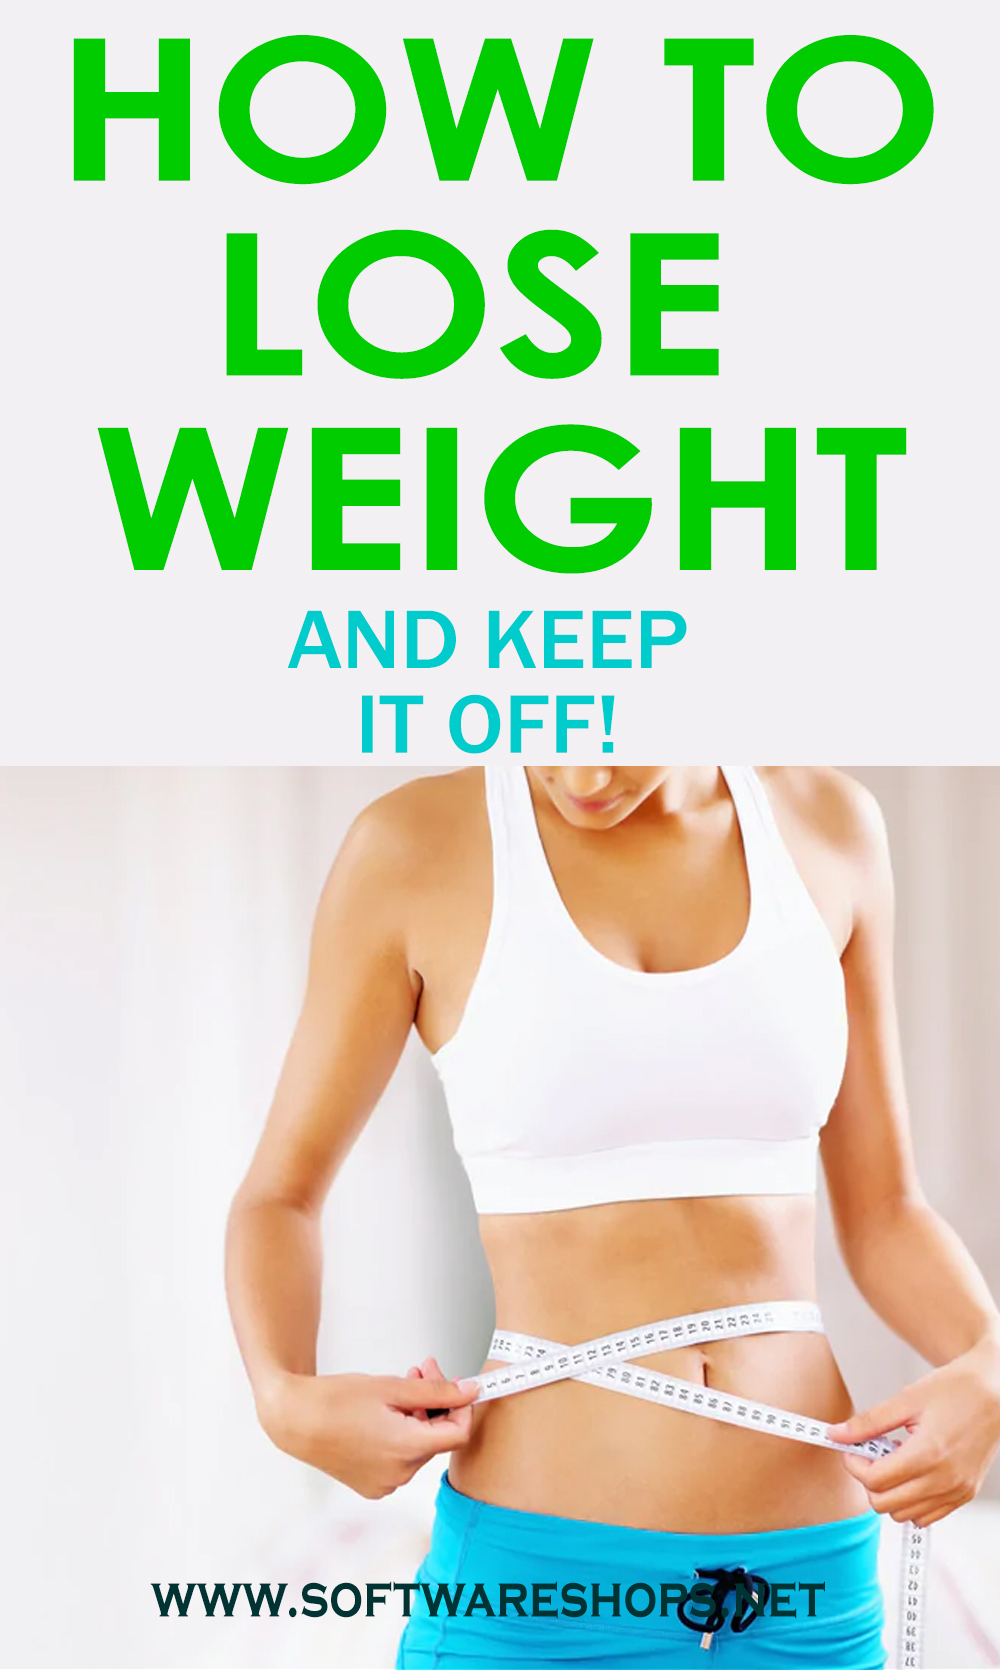 How to lose weight and keep it off!